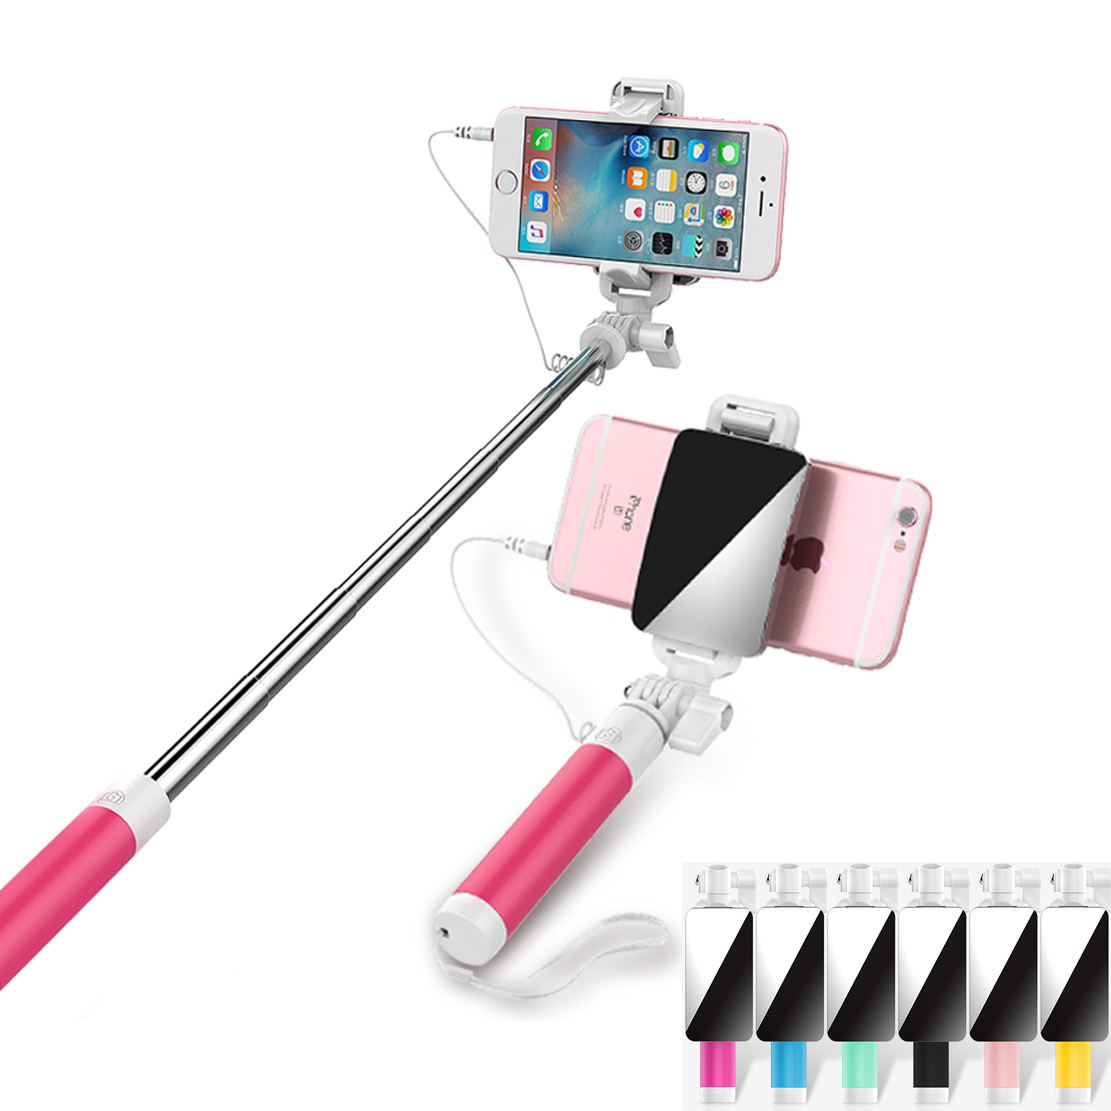 [ no Battery App] Tripod Monopod Selfie Stick selfi palo for Huawei P10 P9 Nova 2 Plus Y7 Y5 Y3 Y6 Honor 9 8 v8 Play 6s 7 Mate 9 new original huawei honor monster earphone2 am17 with mic control in ear earbud for huawei honor 9 mate 8 9 p10 xiaomi headsets